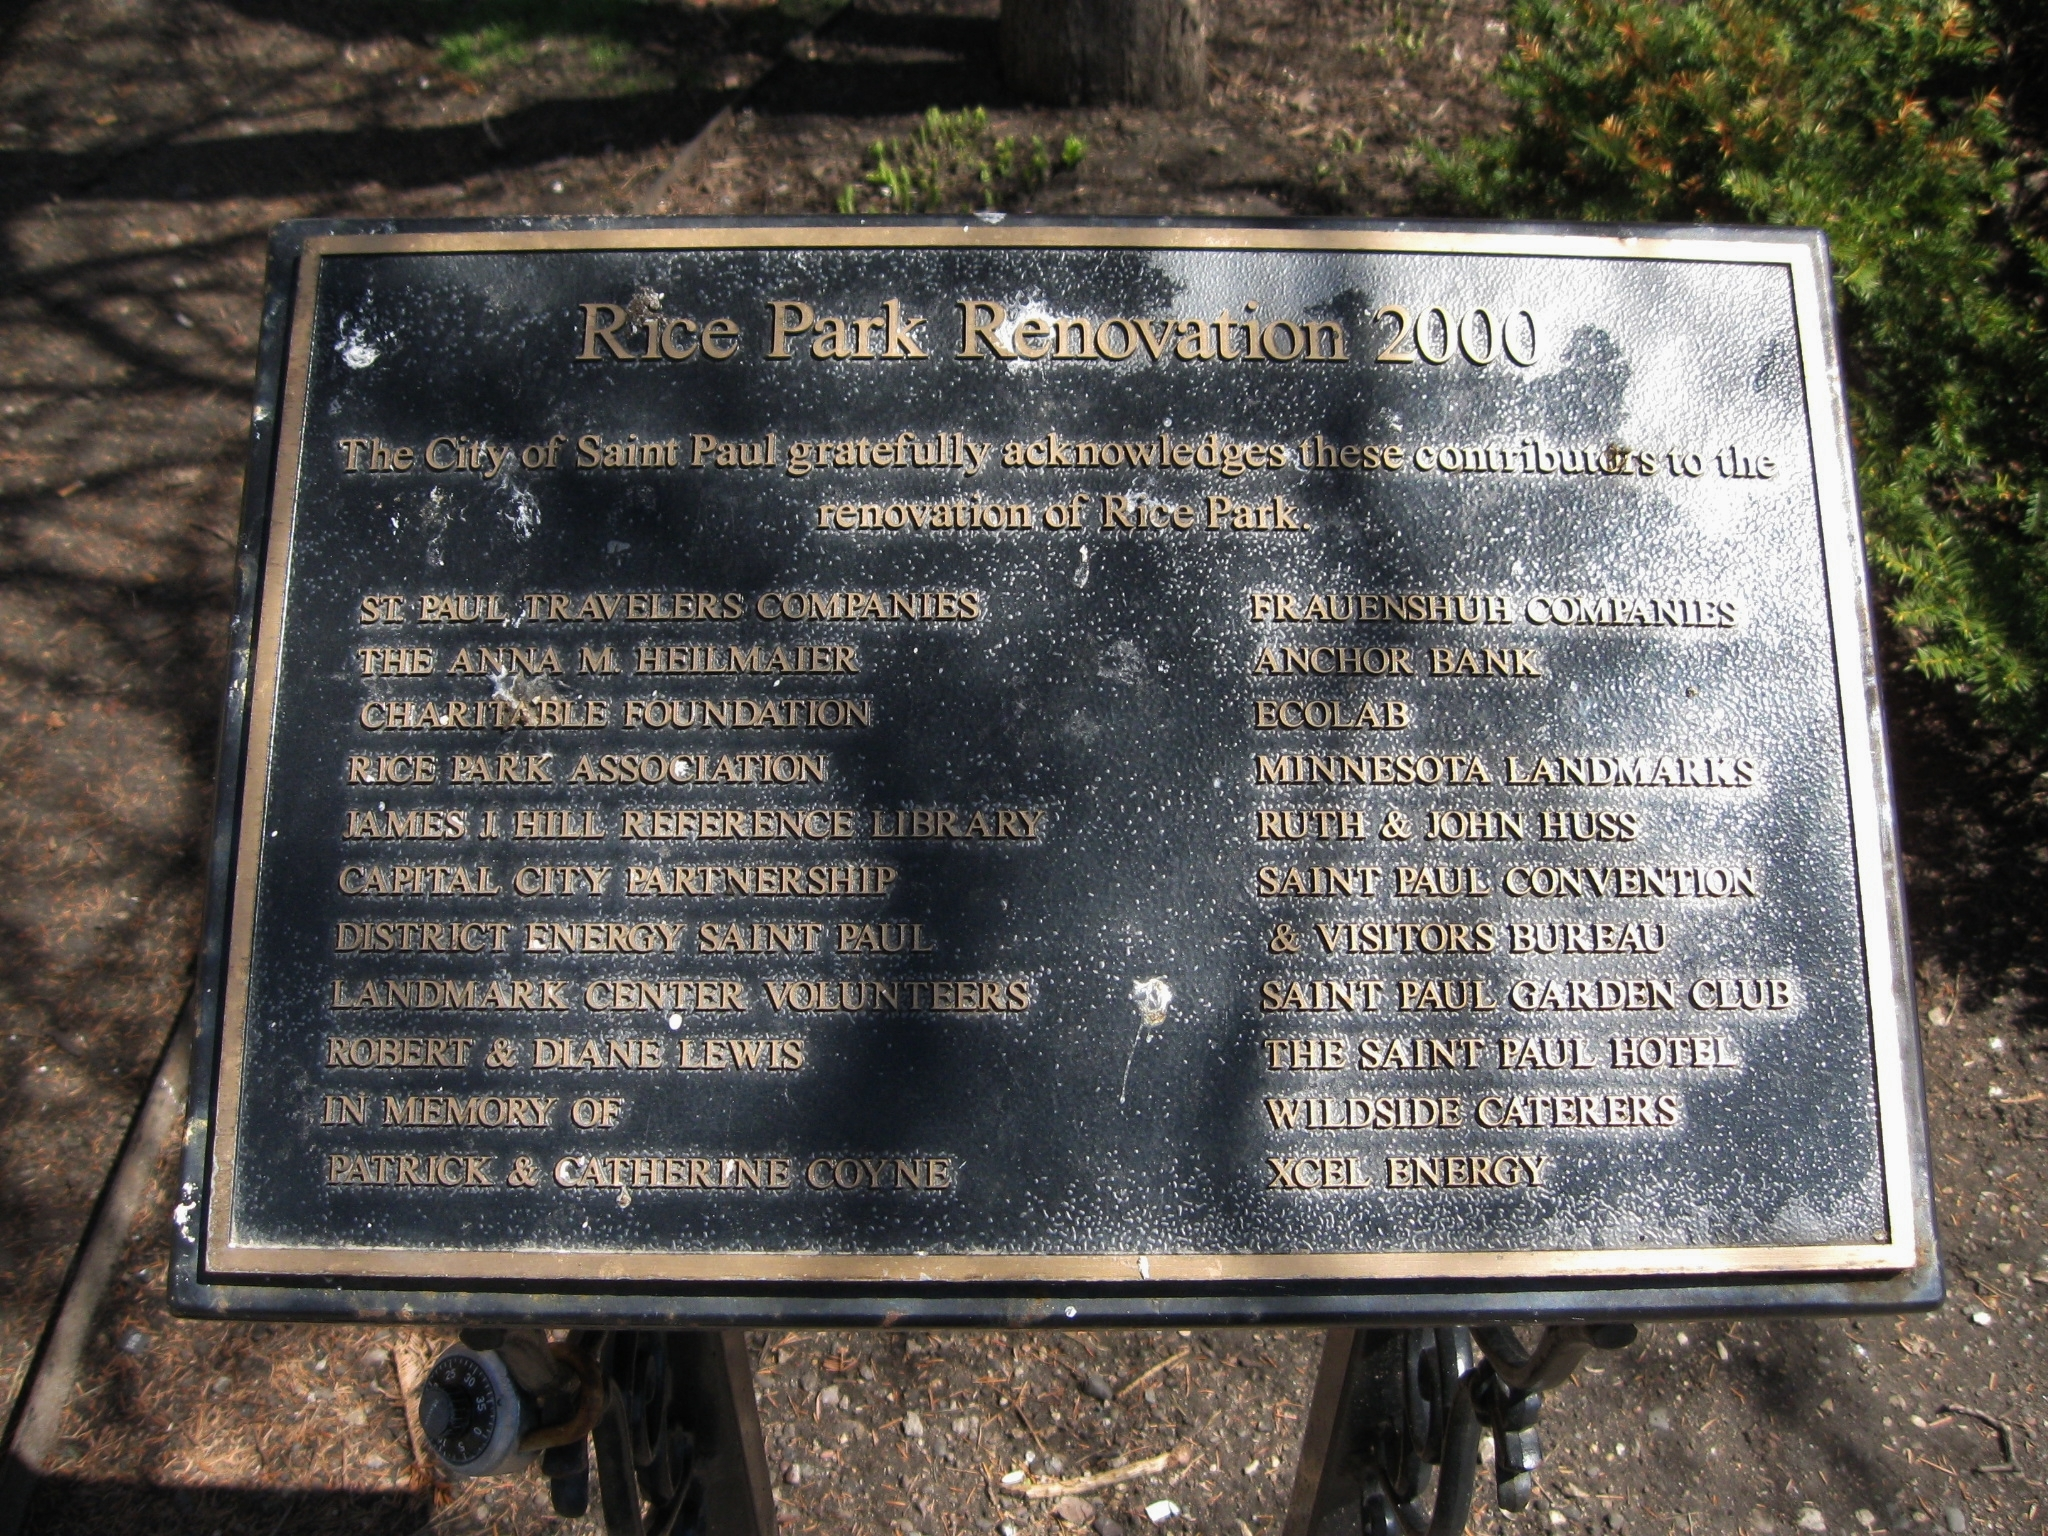 Rice Park Renovation 2000 Donor Plaque